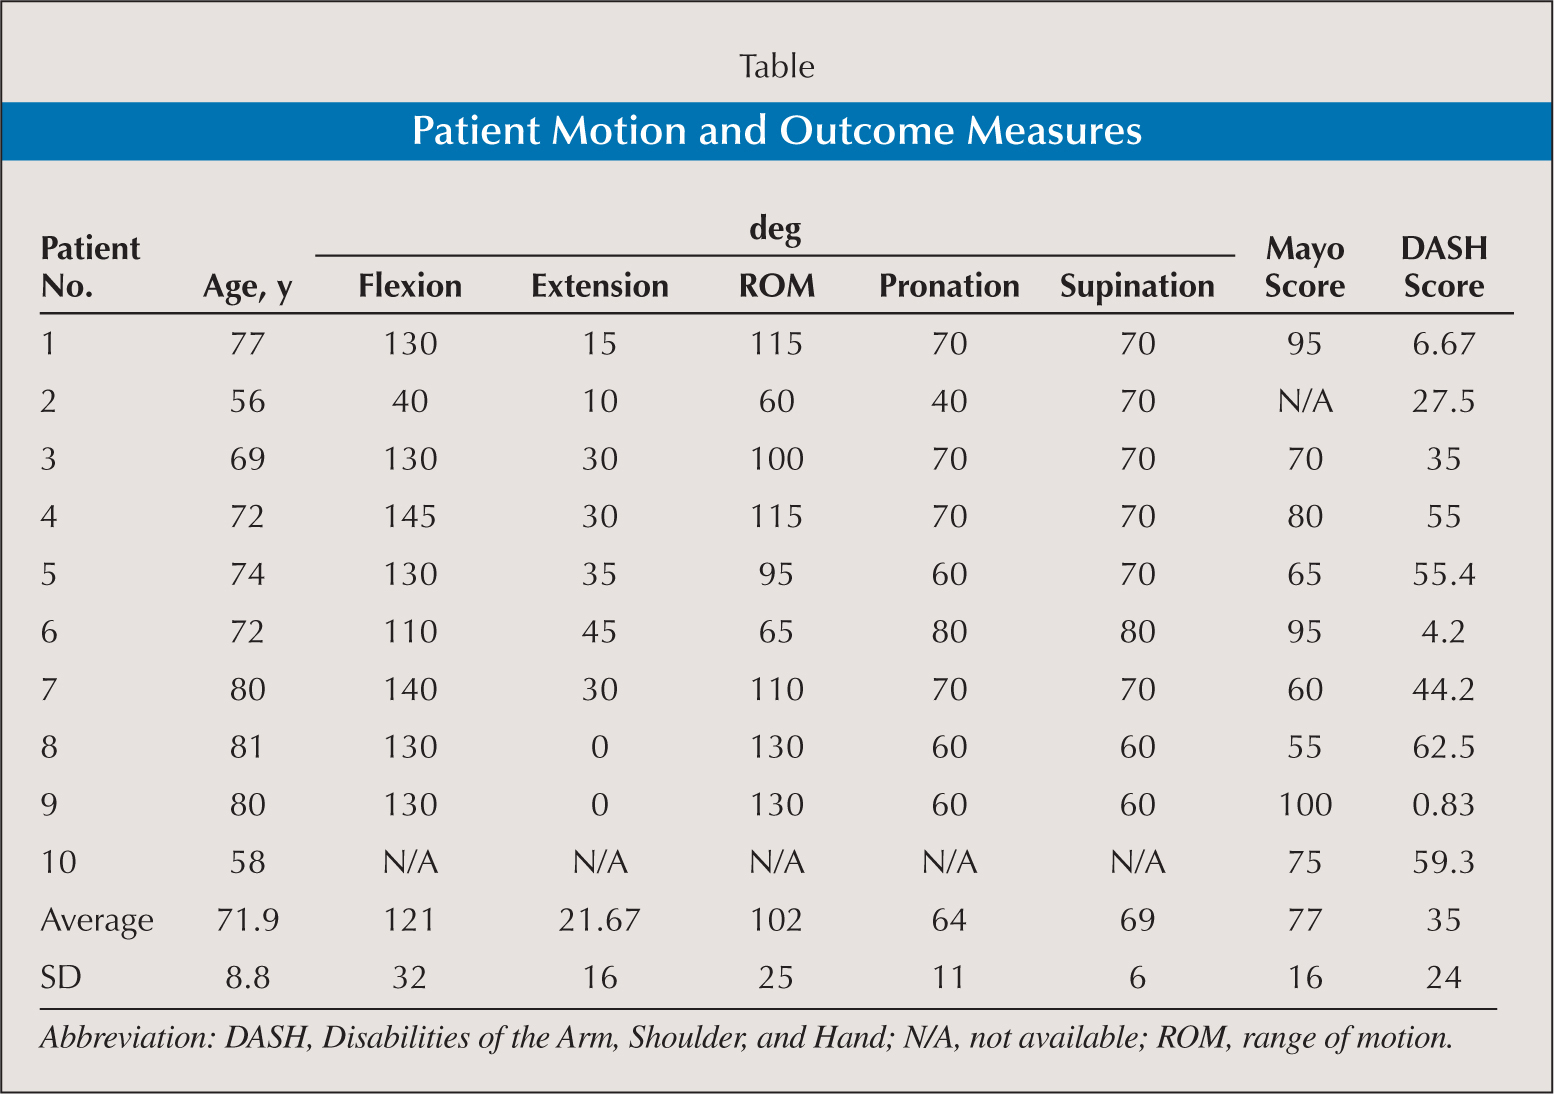 Patient Motion and Outcome Measures